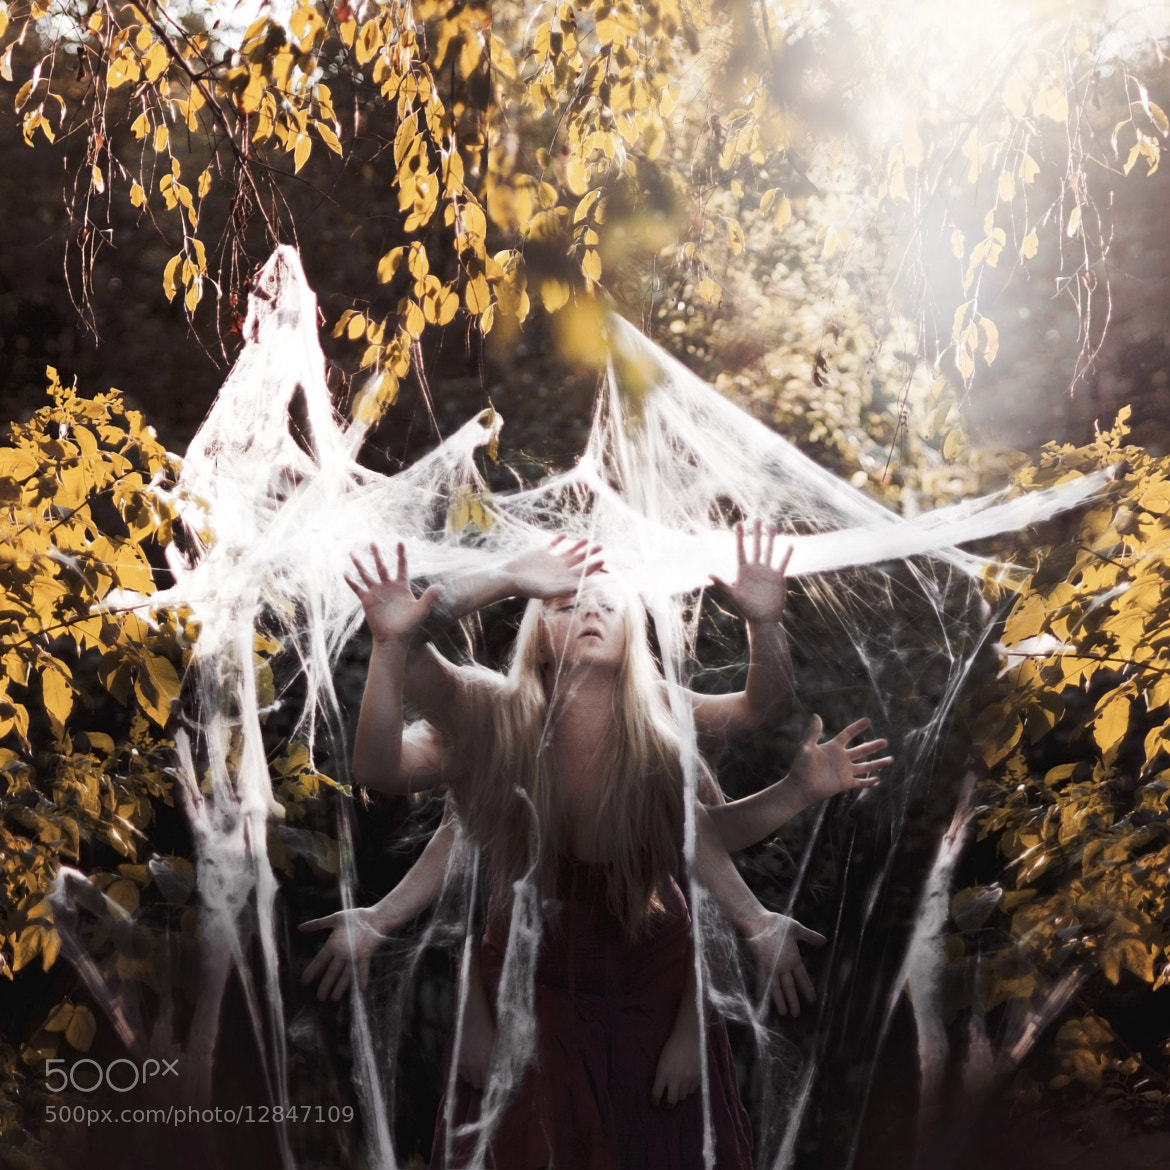 Photograph what tangled webs we weave. by Nicole Belke on 500px